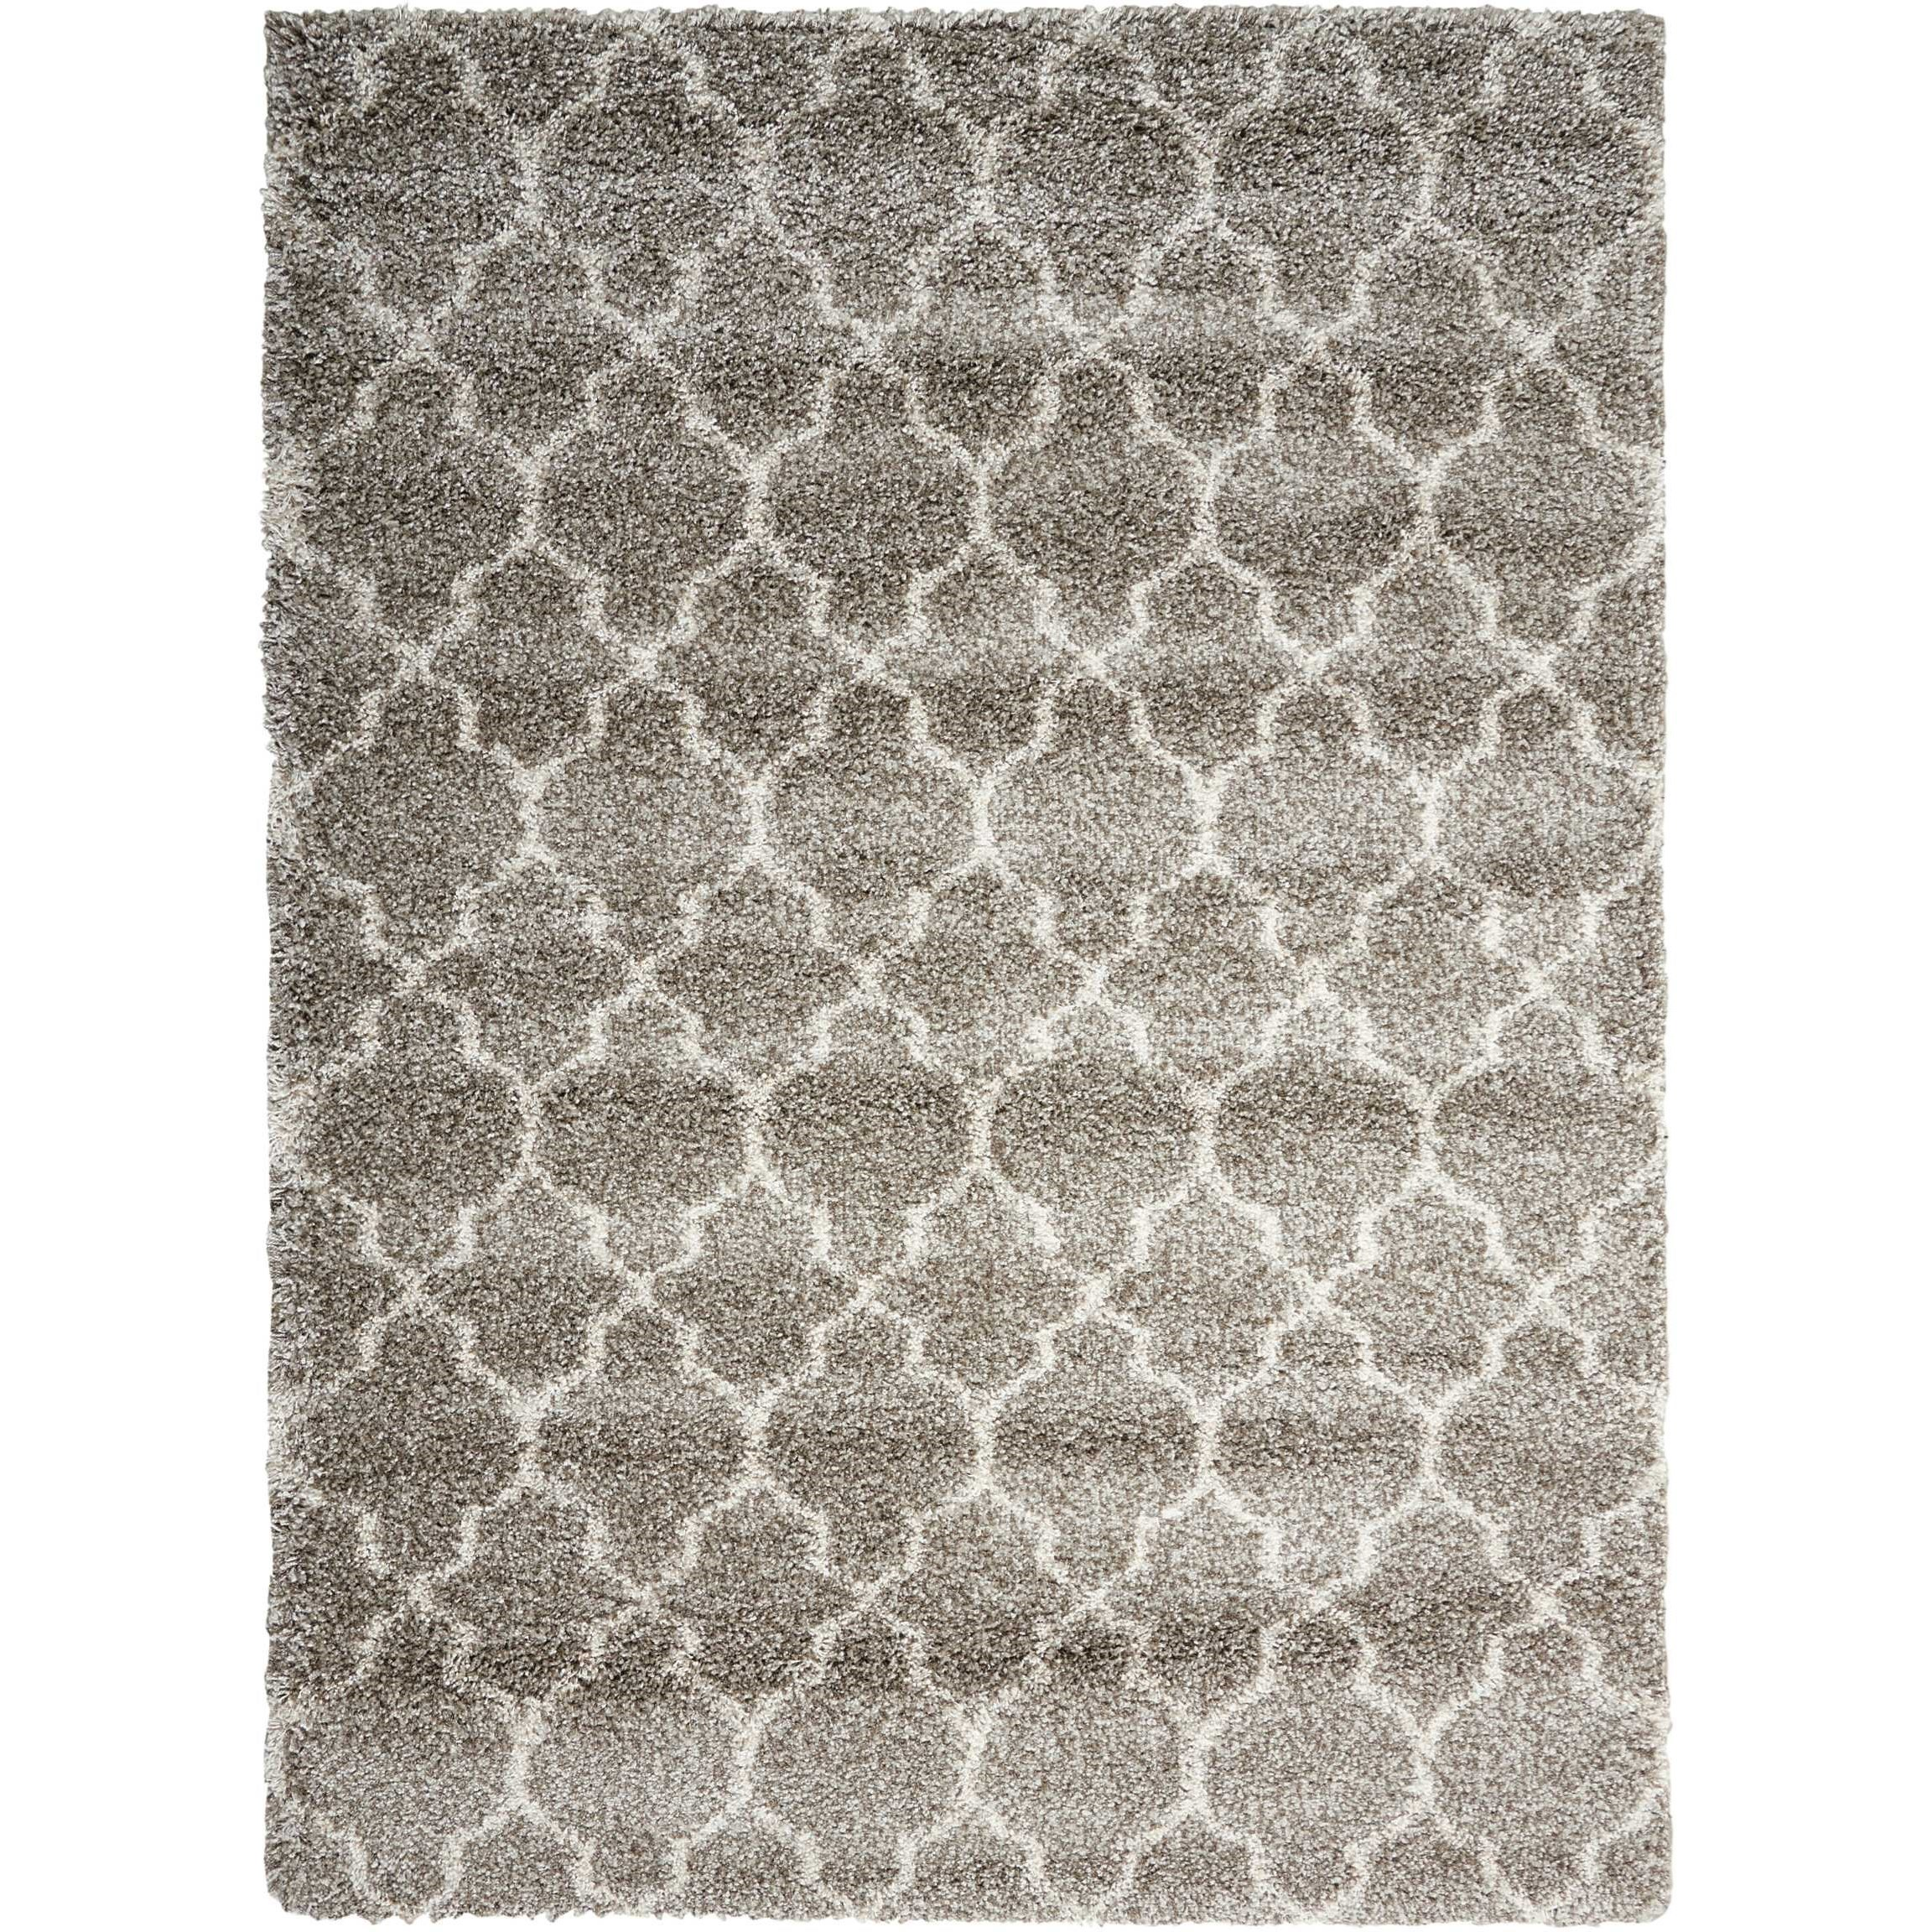 "Amore 3'2"" x 5' Stone Rectangle Rug by Nourison at Home Collections Furniture"